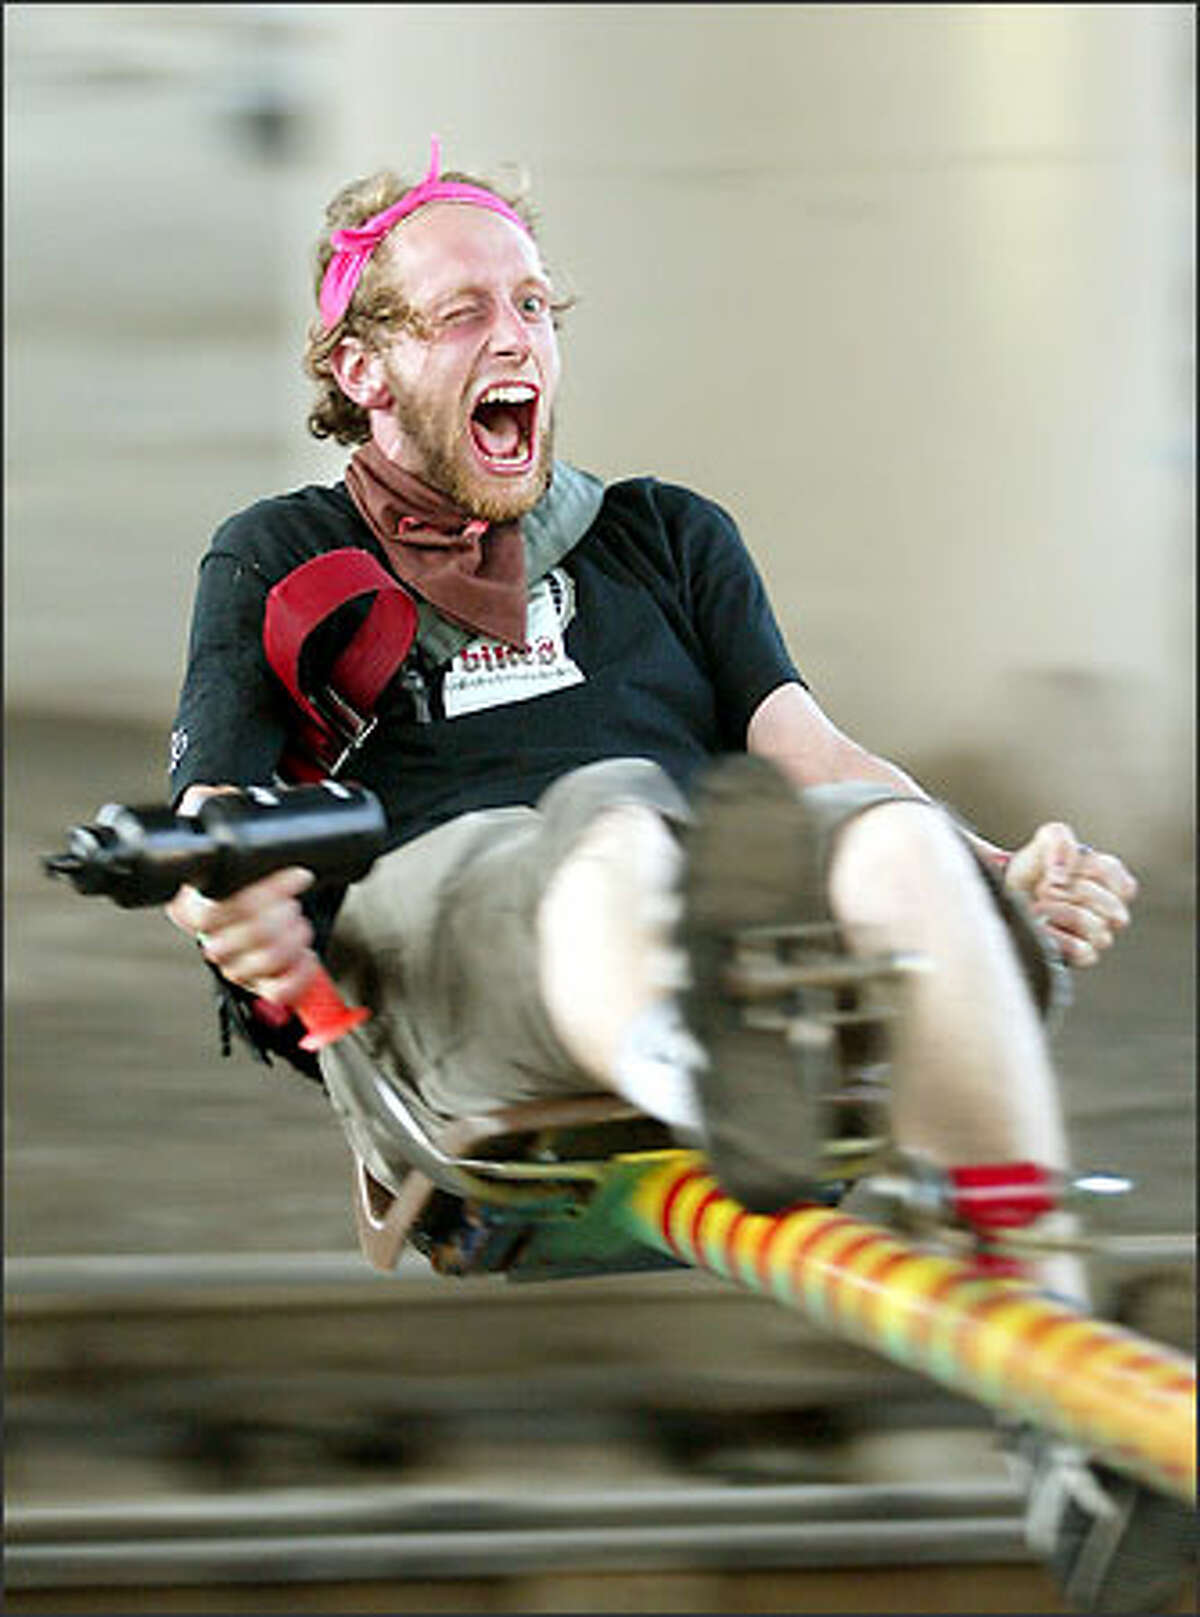 With just enough strength left to keep hold of the beer in his water bottle, Herman Beans rides a pedal-powered centrifuge during the party after the weekend's Eighth Annual Downhill and Messenger Challenge.